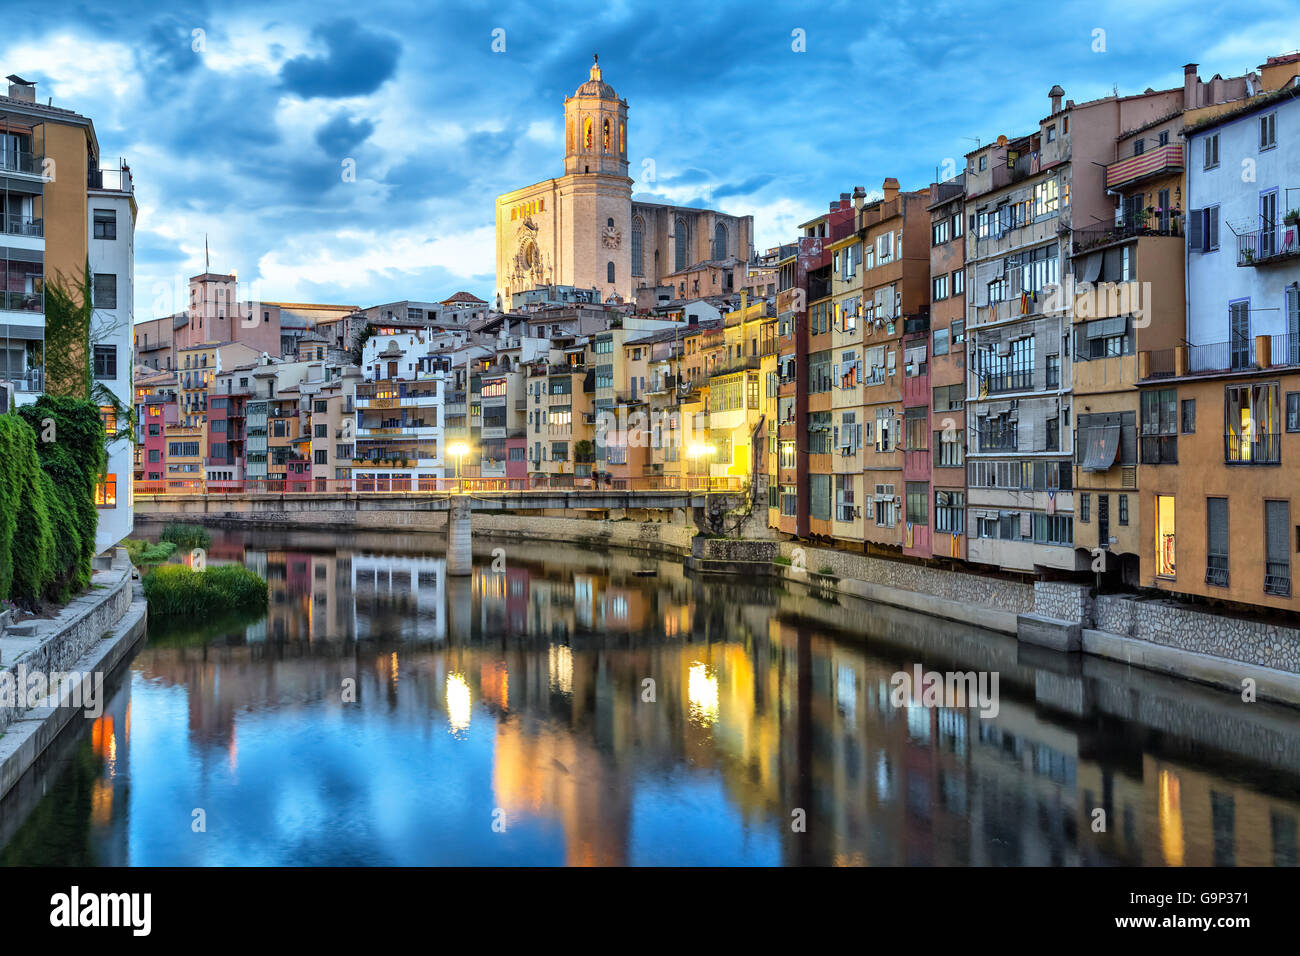 Cathedral and colorful houses on the side of river Onyar in the evening, Girona, Catalonia, Spain - Stock Image